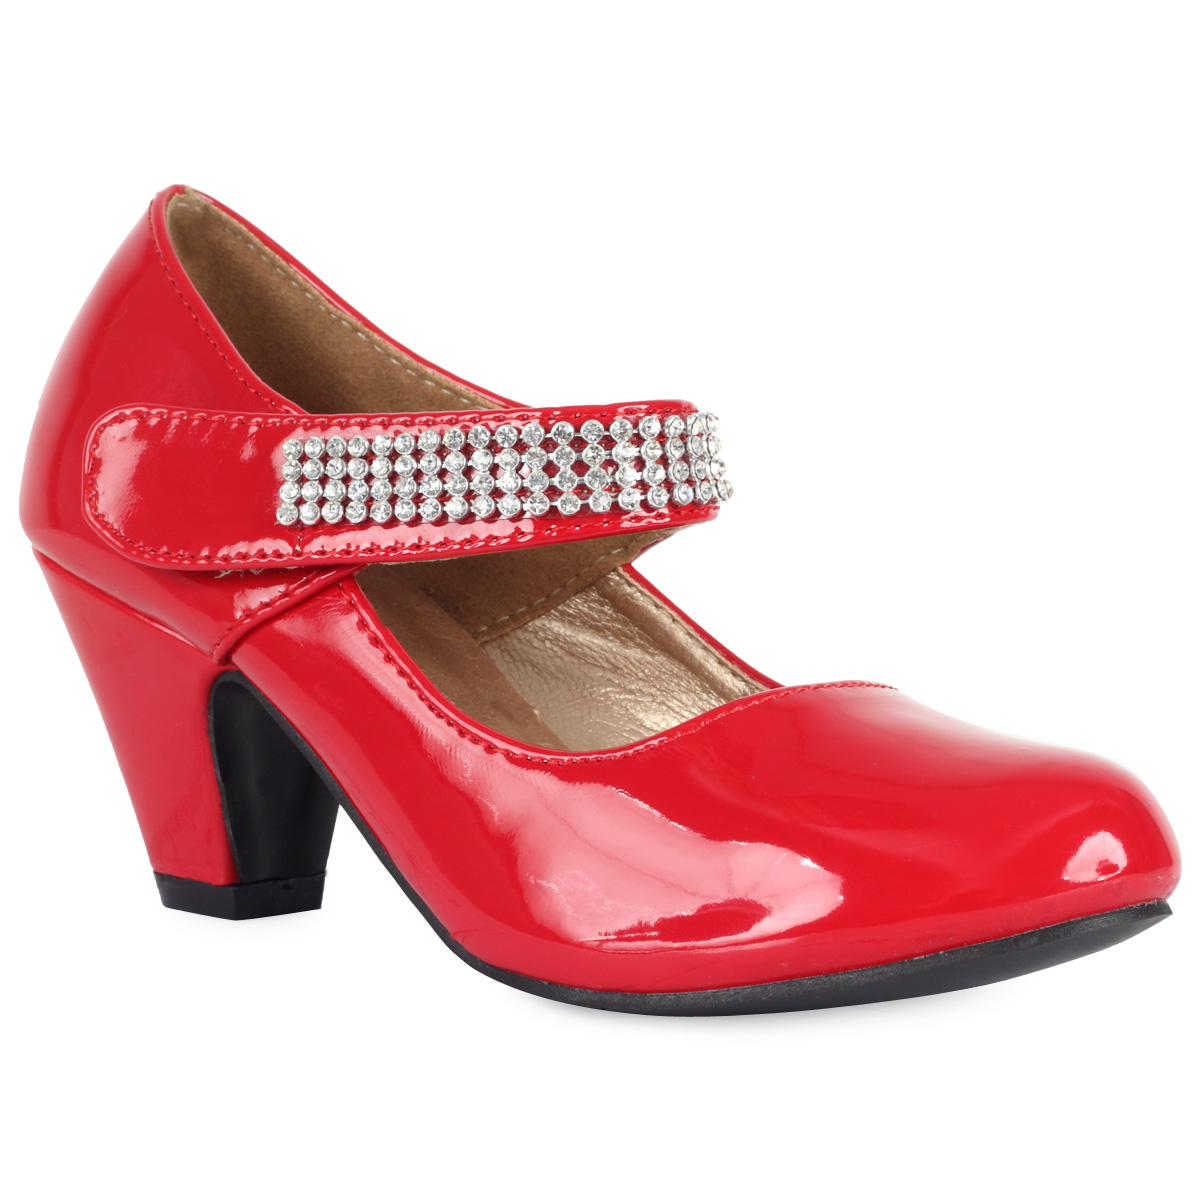 kids patent red girls small heel diamante mary jane party